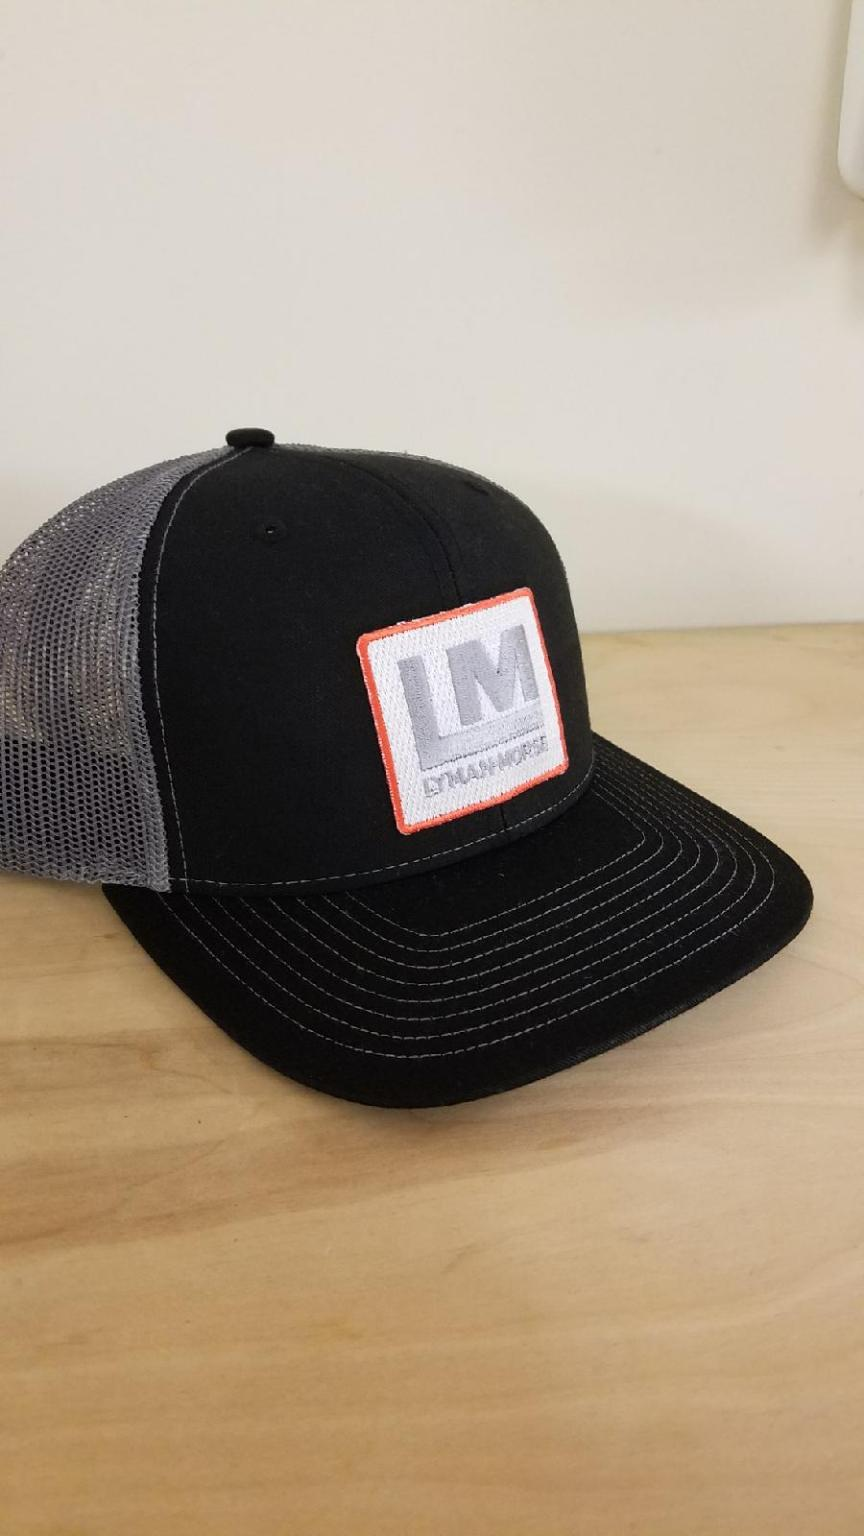 Snapback Trucker Hat Black/Gray LM Patch